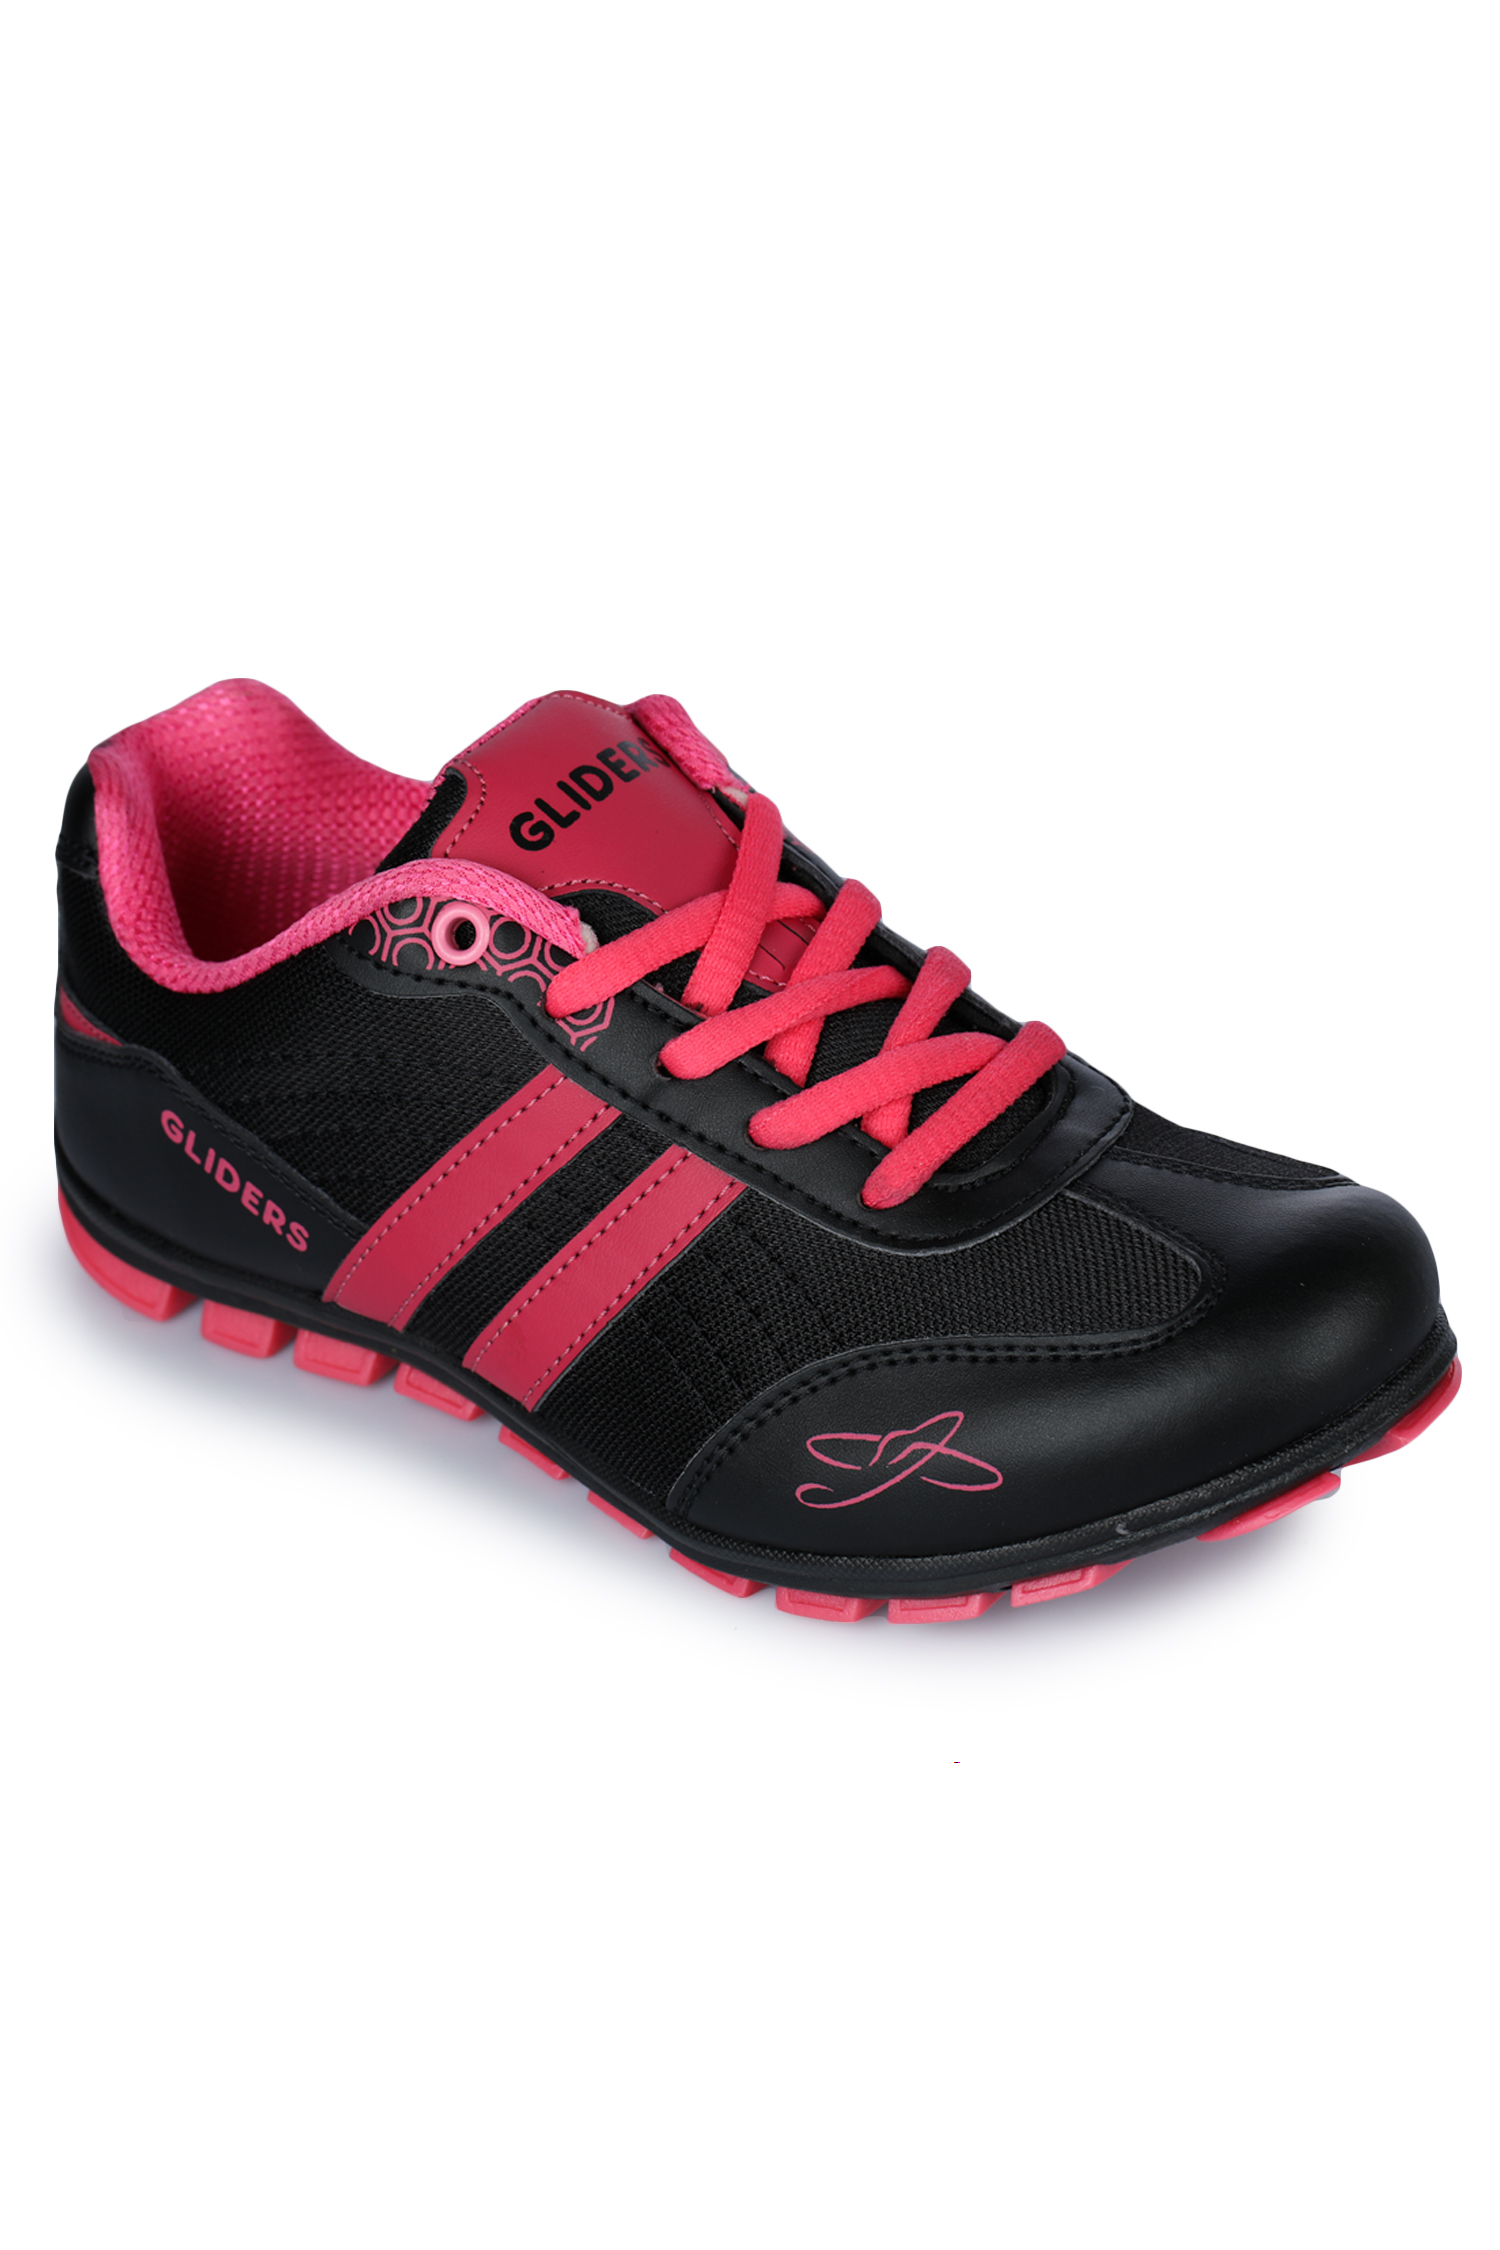 Liberty | Liberty Gliders Pink Sports Running Shoes LIC-102_Pink For - Women